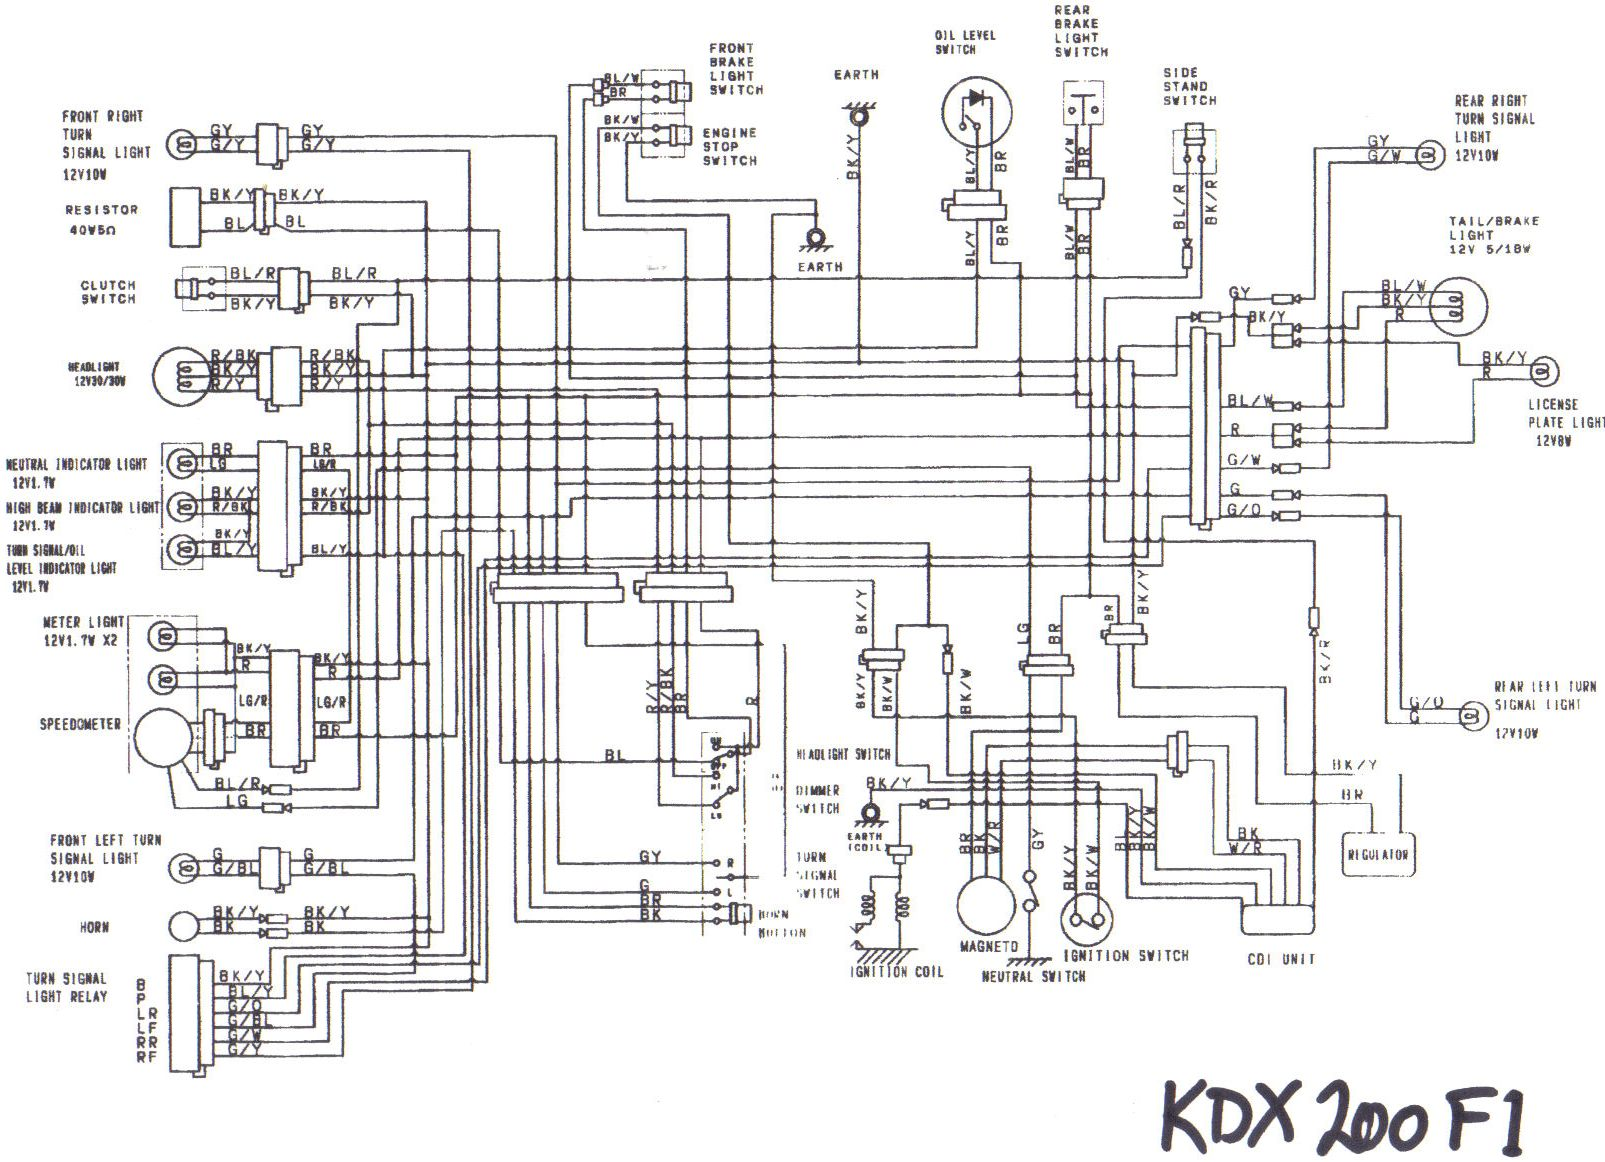 kdx200 f1 wiring diagram